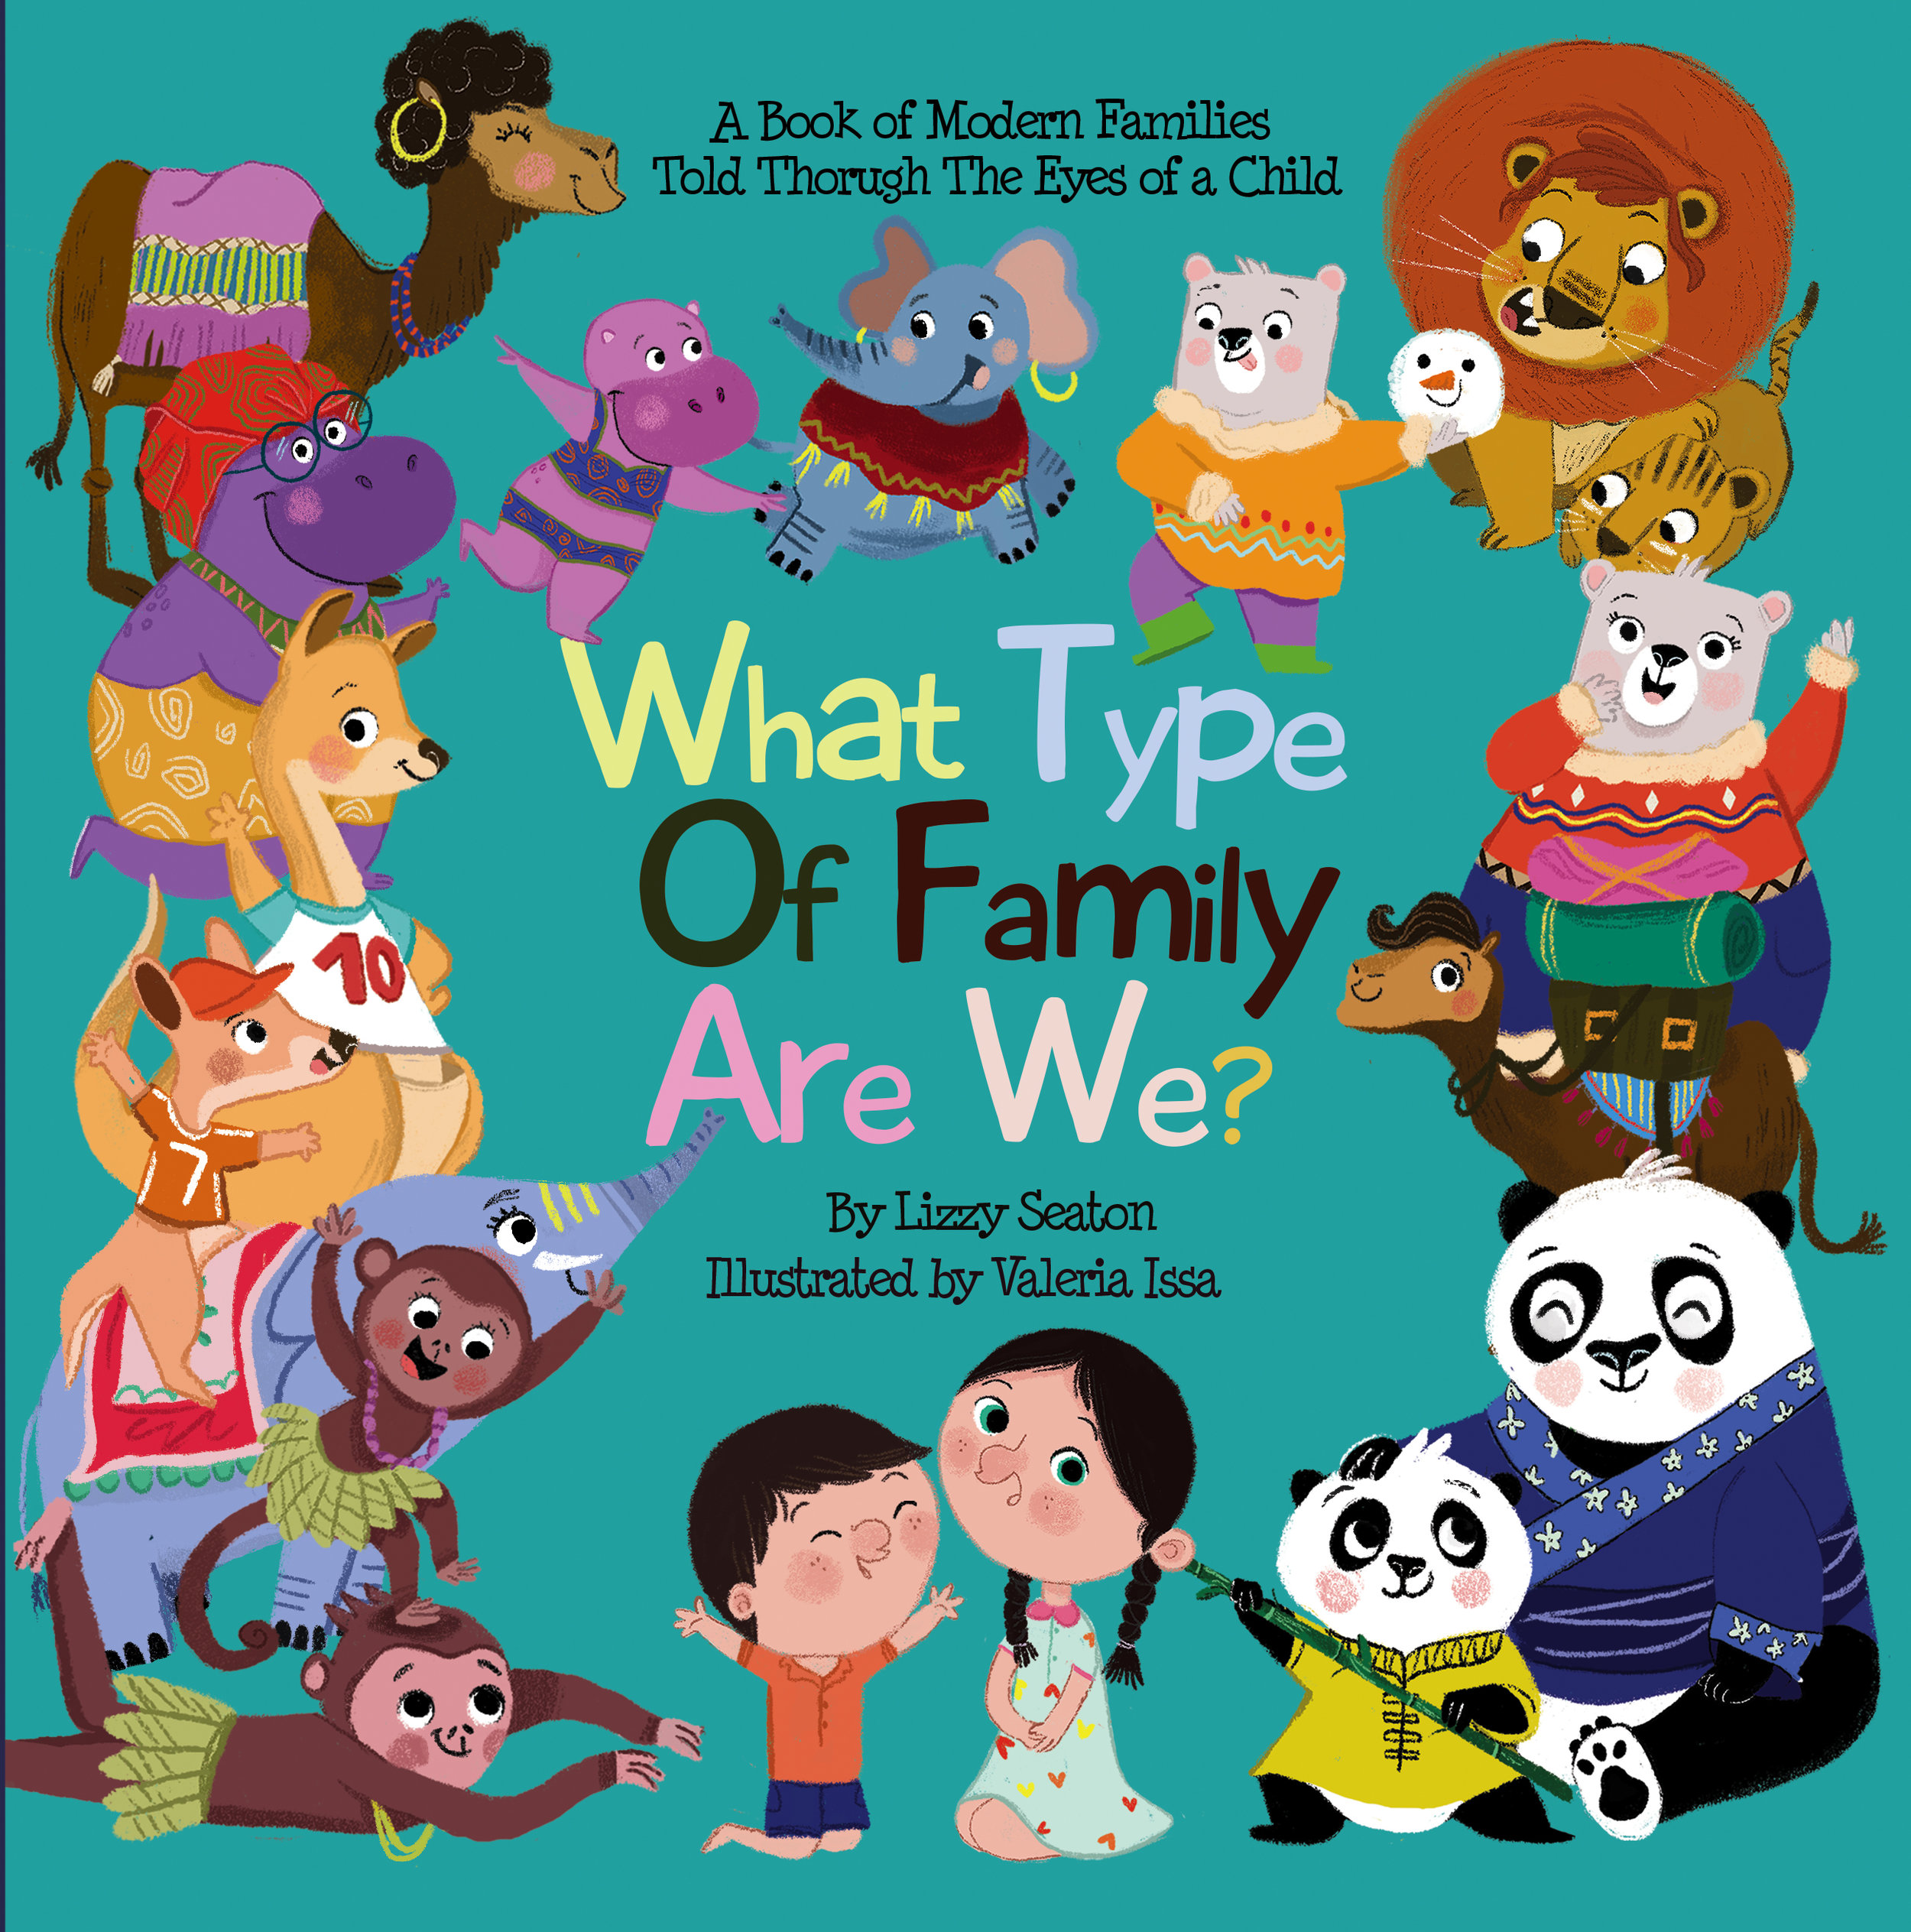 Have you ever wondered if there are other families like YOURS?Come take a journey with ELLA and OLIVER to discover the many shapes and sizes families come in today! -